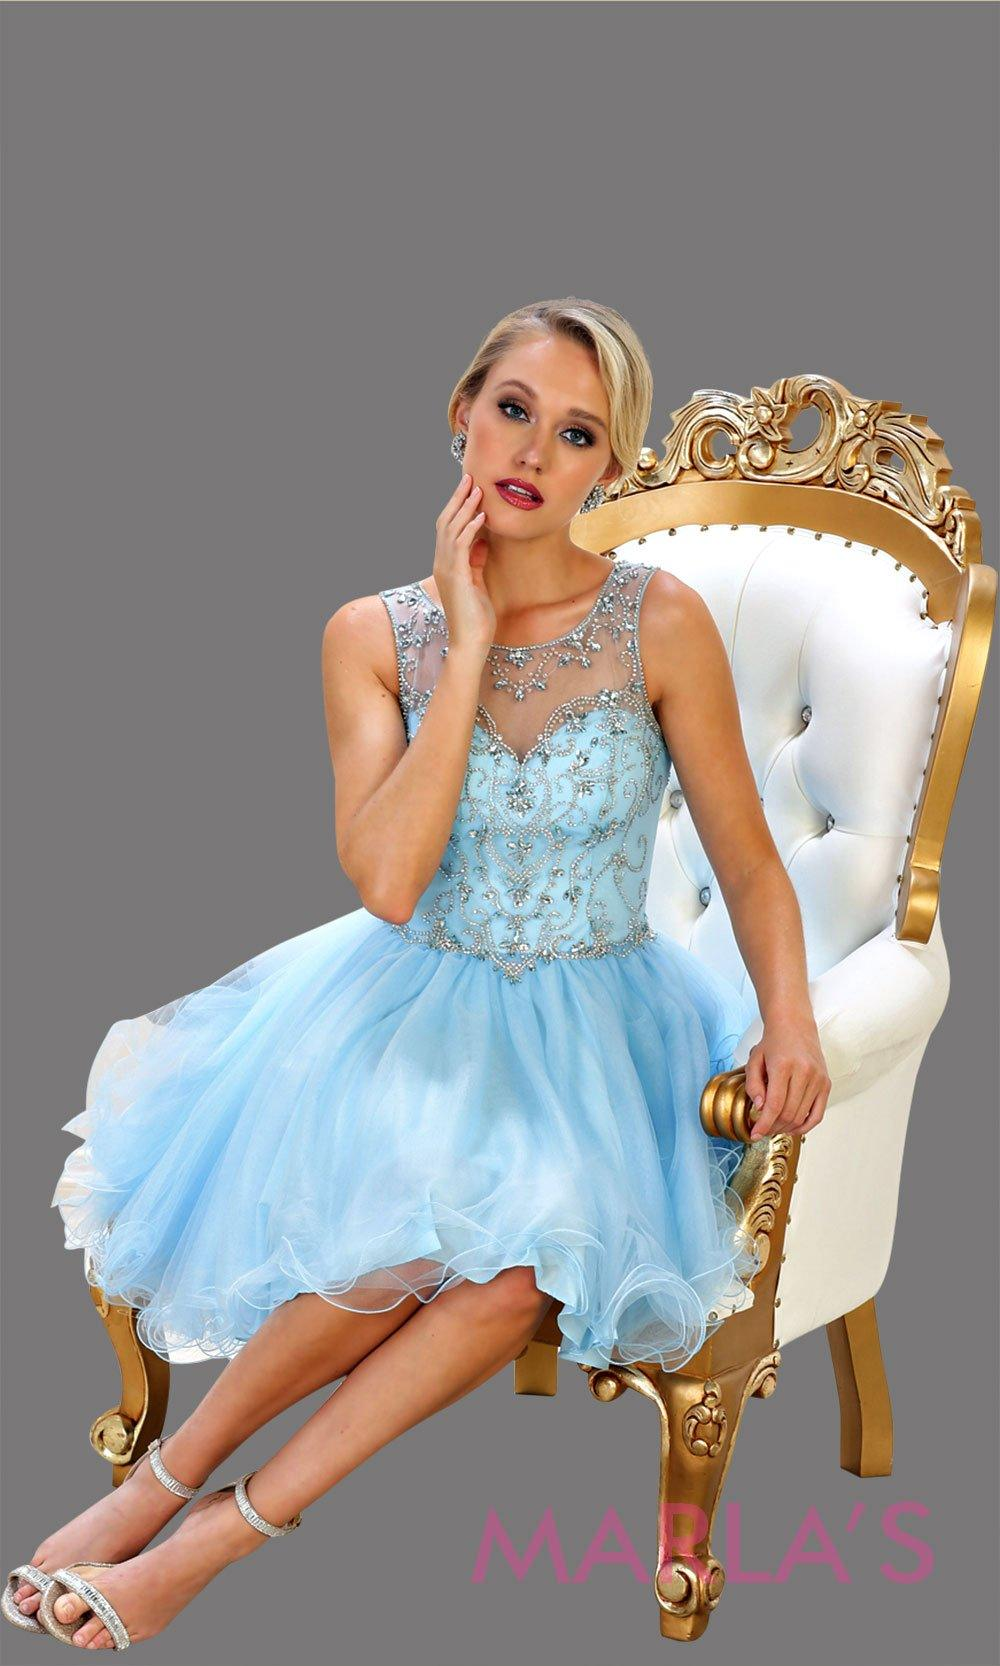 Short high neck light blue puffy grade 8 grad dress or homecoming. Perfect for aqua blue graduation, homecoming, debut, Quinceanera Damas, Sweet 16, Sweet 15. Available in plus sizes.